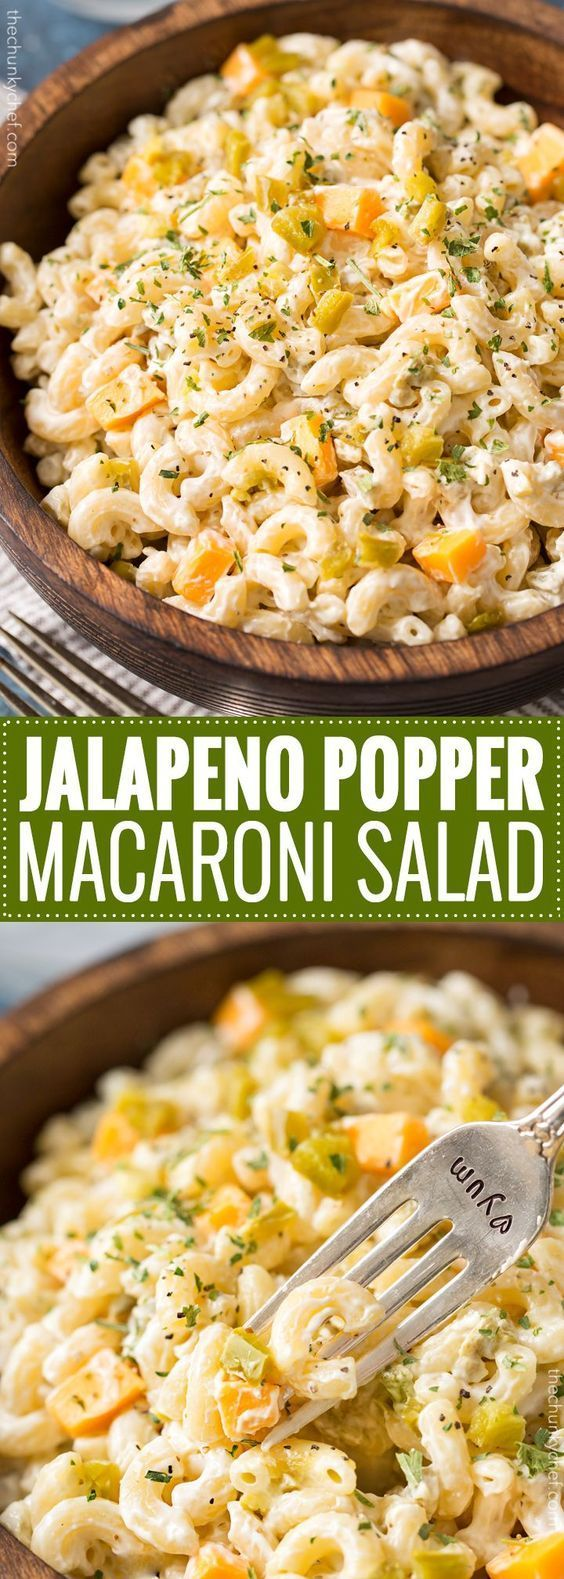 Jalapeño Popper Macaroni Salad - regular macaroni salad, step aside. this  creamy jalapeño popper version is full of amazing flavors, packs some spicy  punch, ...